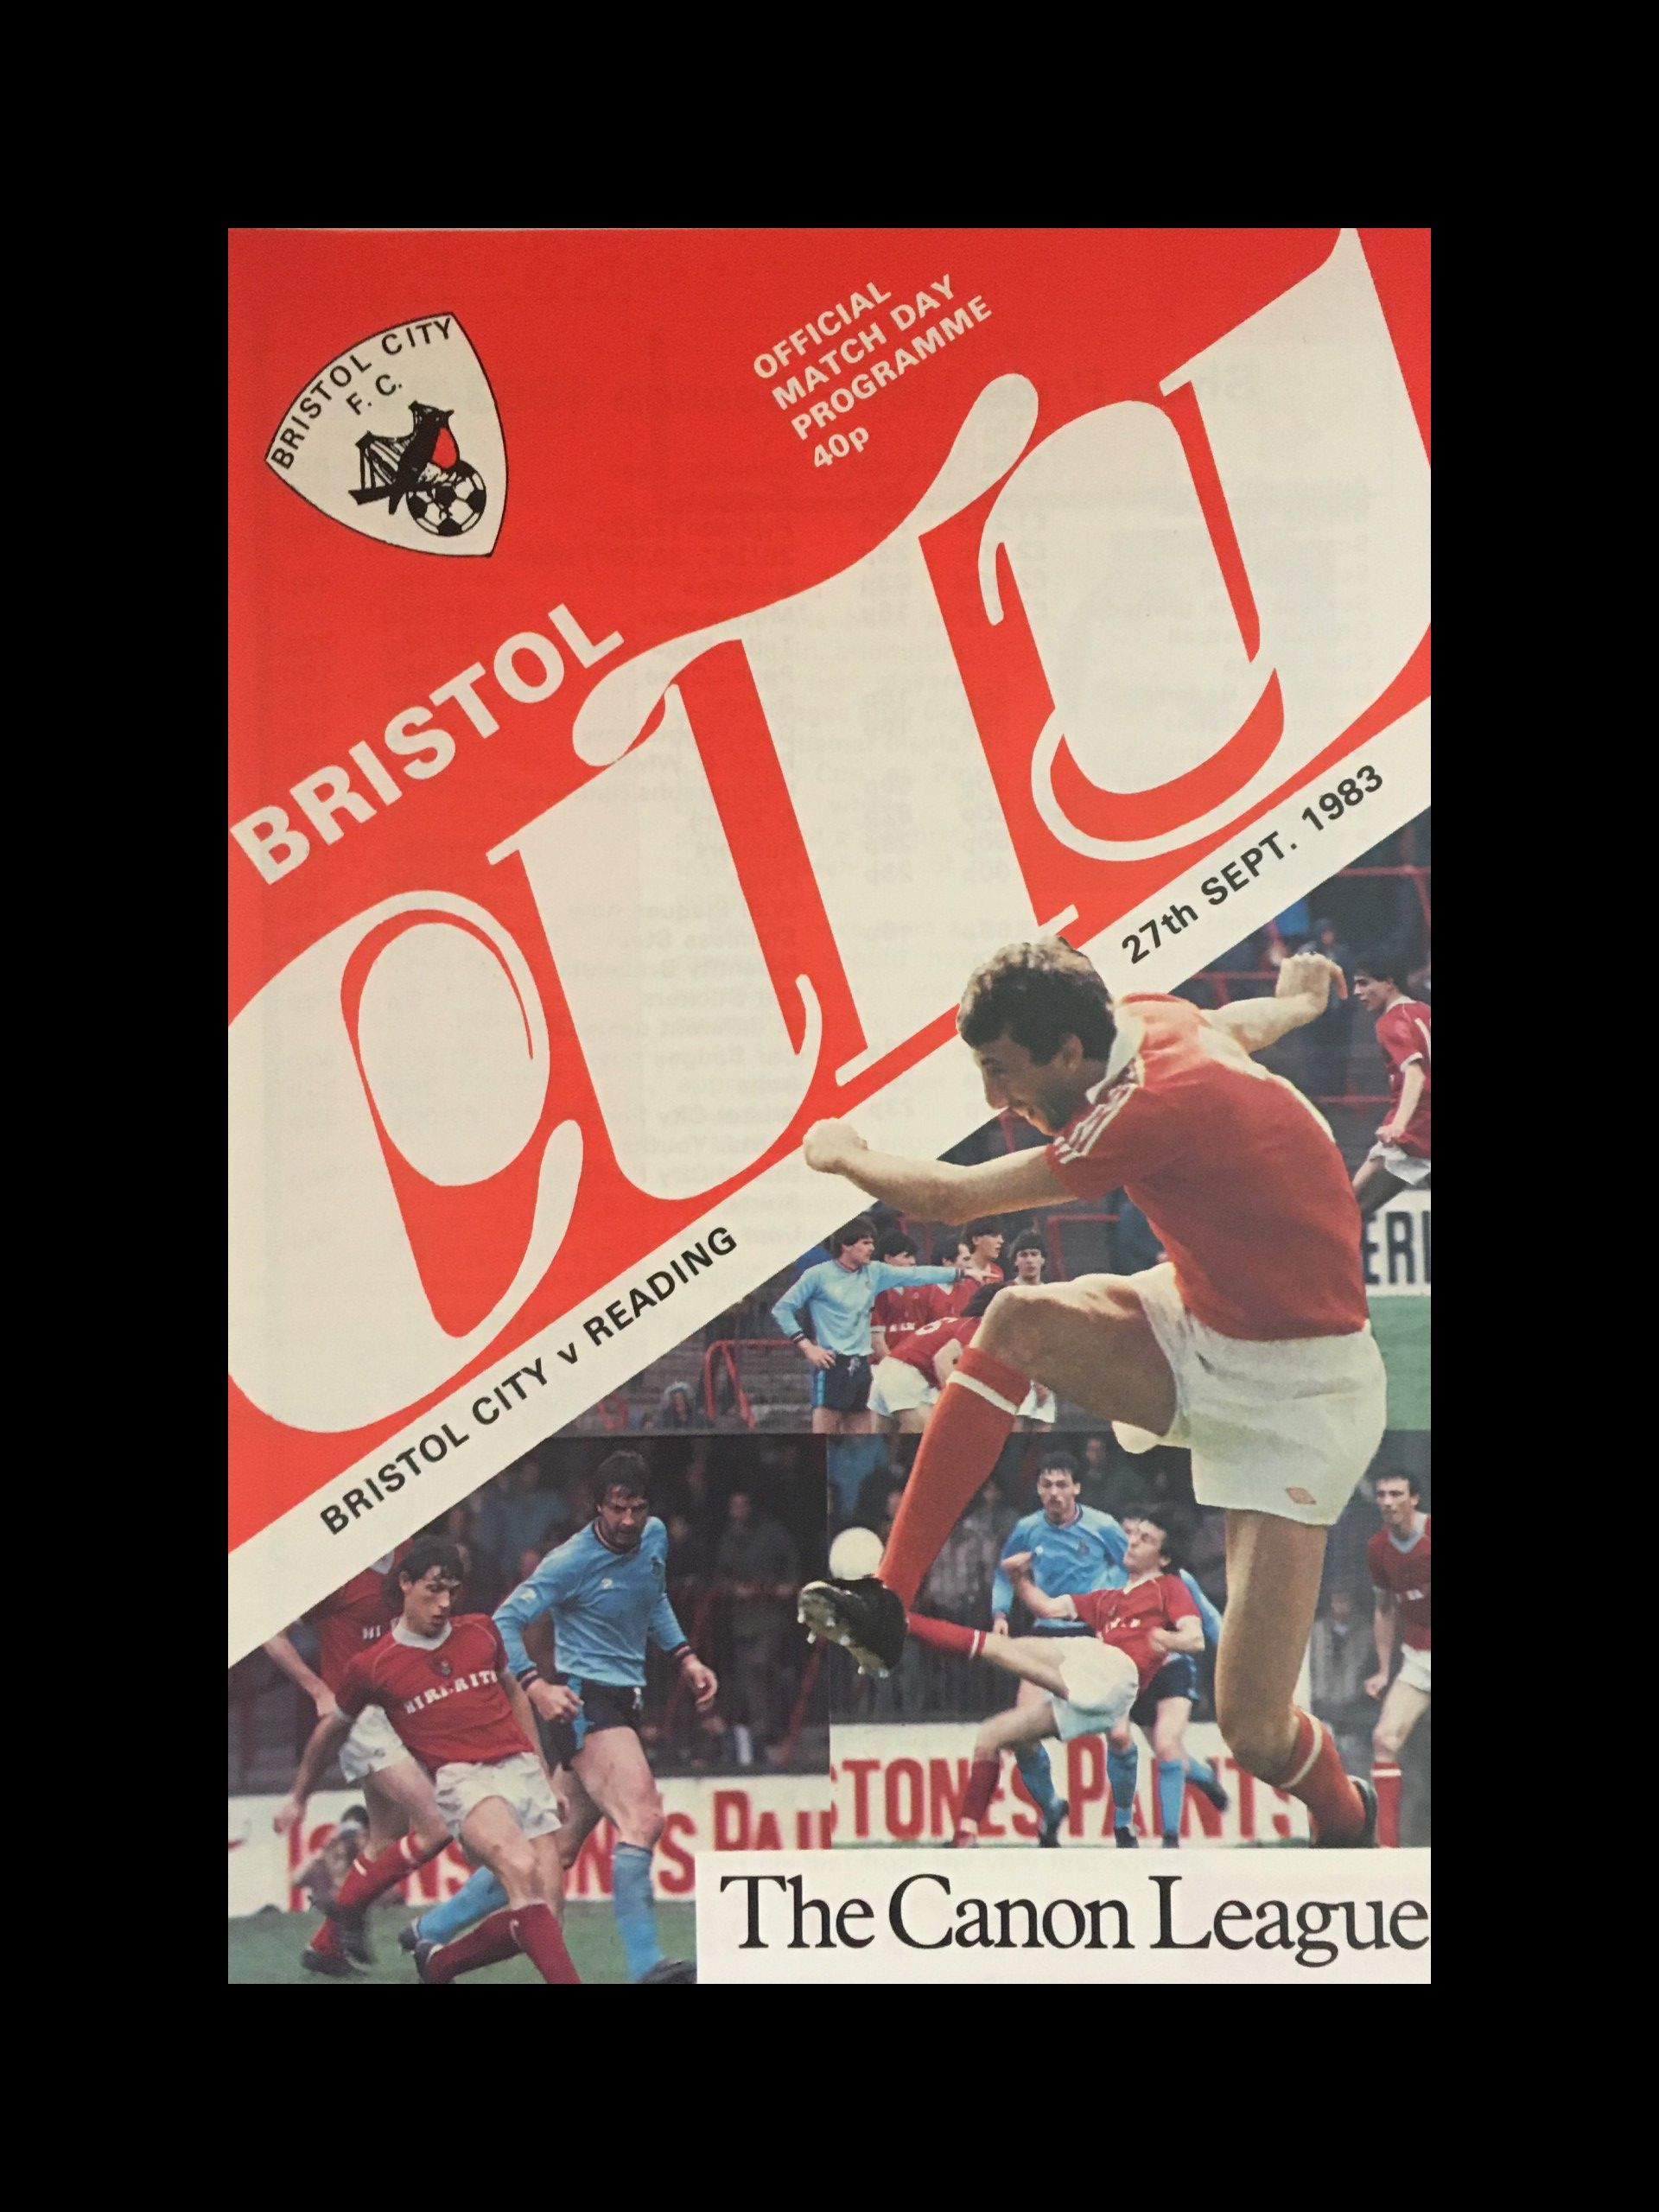 Bristol City v Reading 27-09-83 Programme